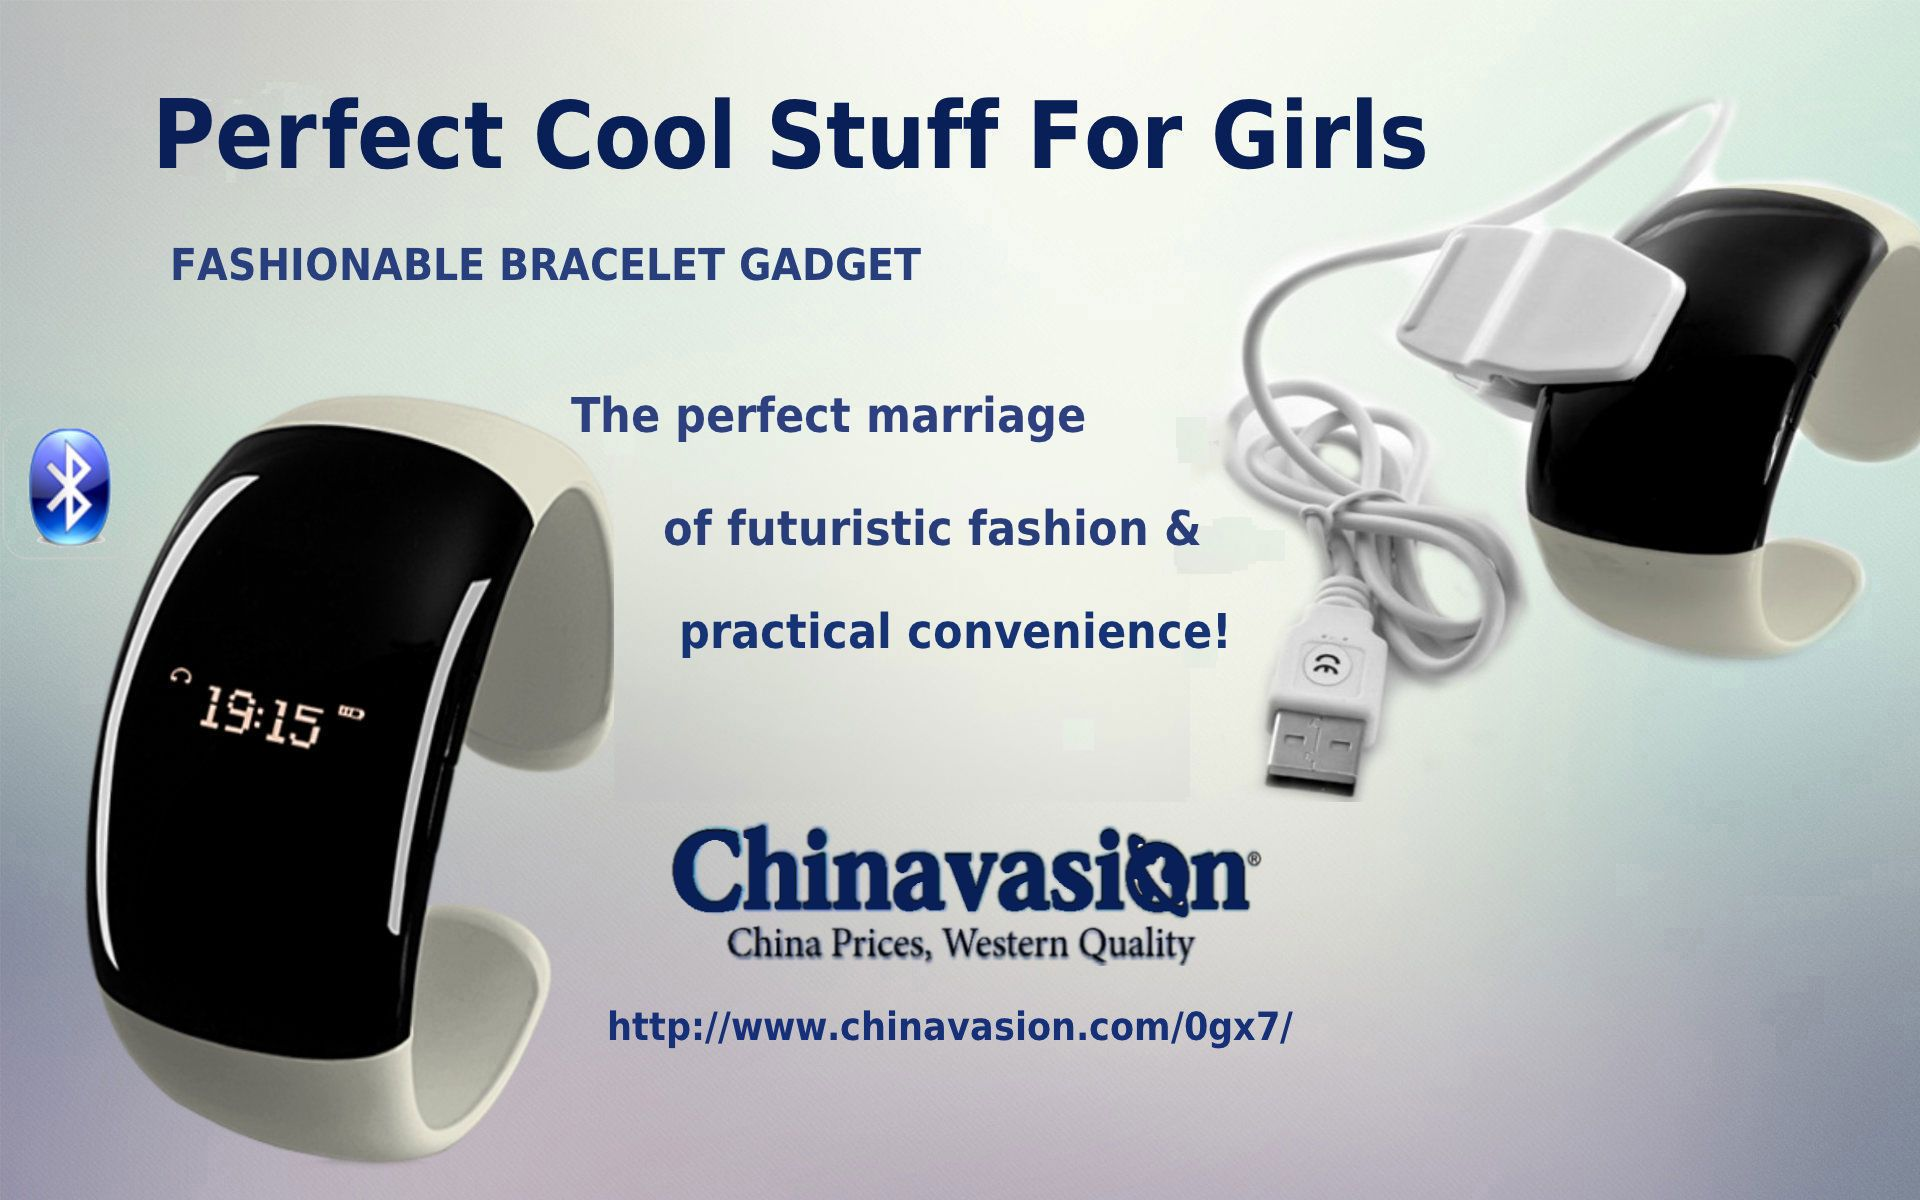 Cool Electronics Gad s Chinavasion is the Biggest and Best